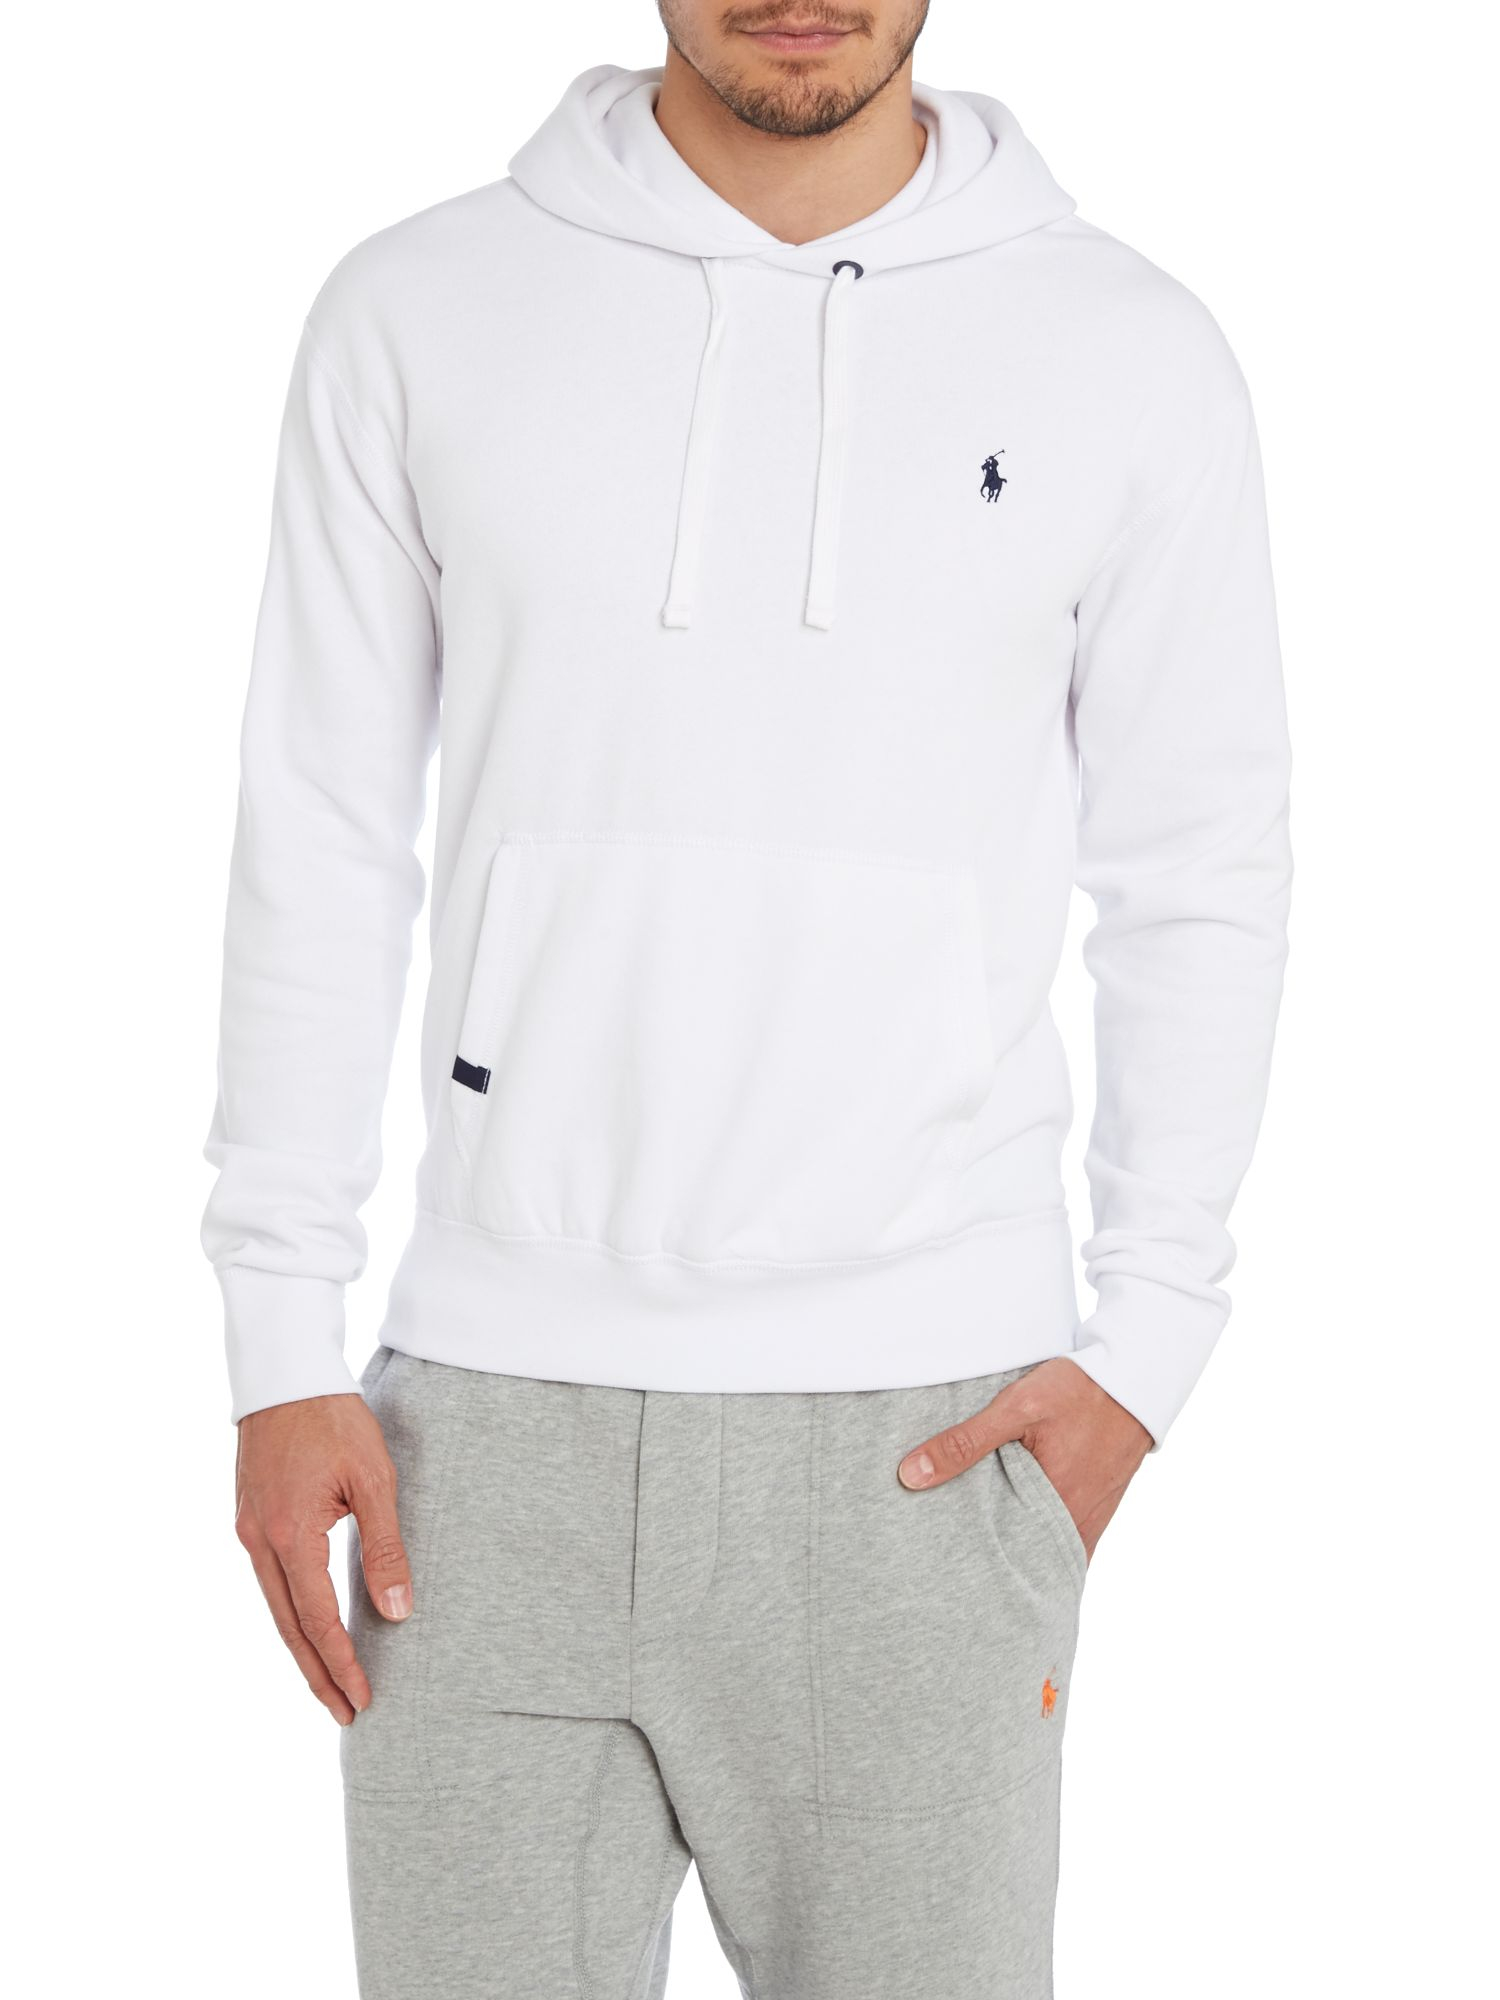 polo ralph lauren magic fleece hooded sweatshirt in white. Black Bedroom Furniture Sets. Home Design Ideas